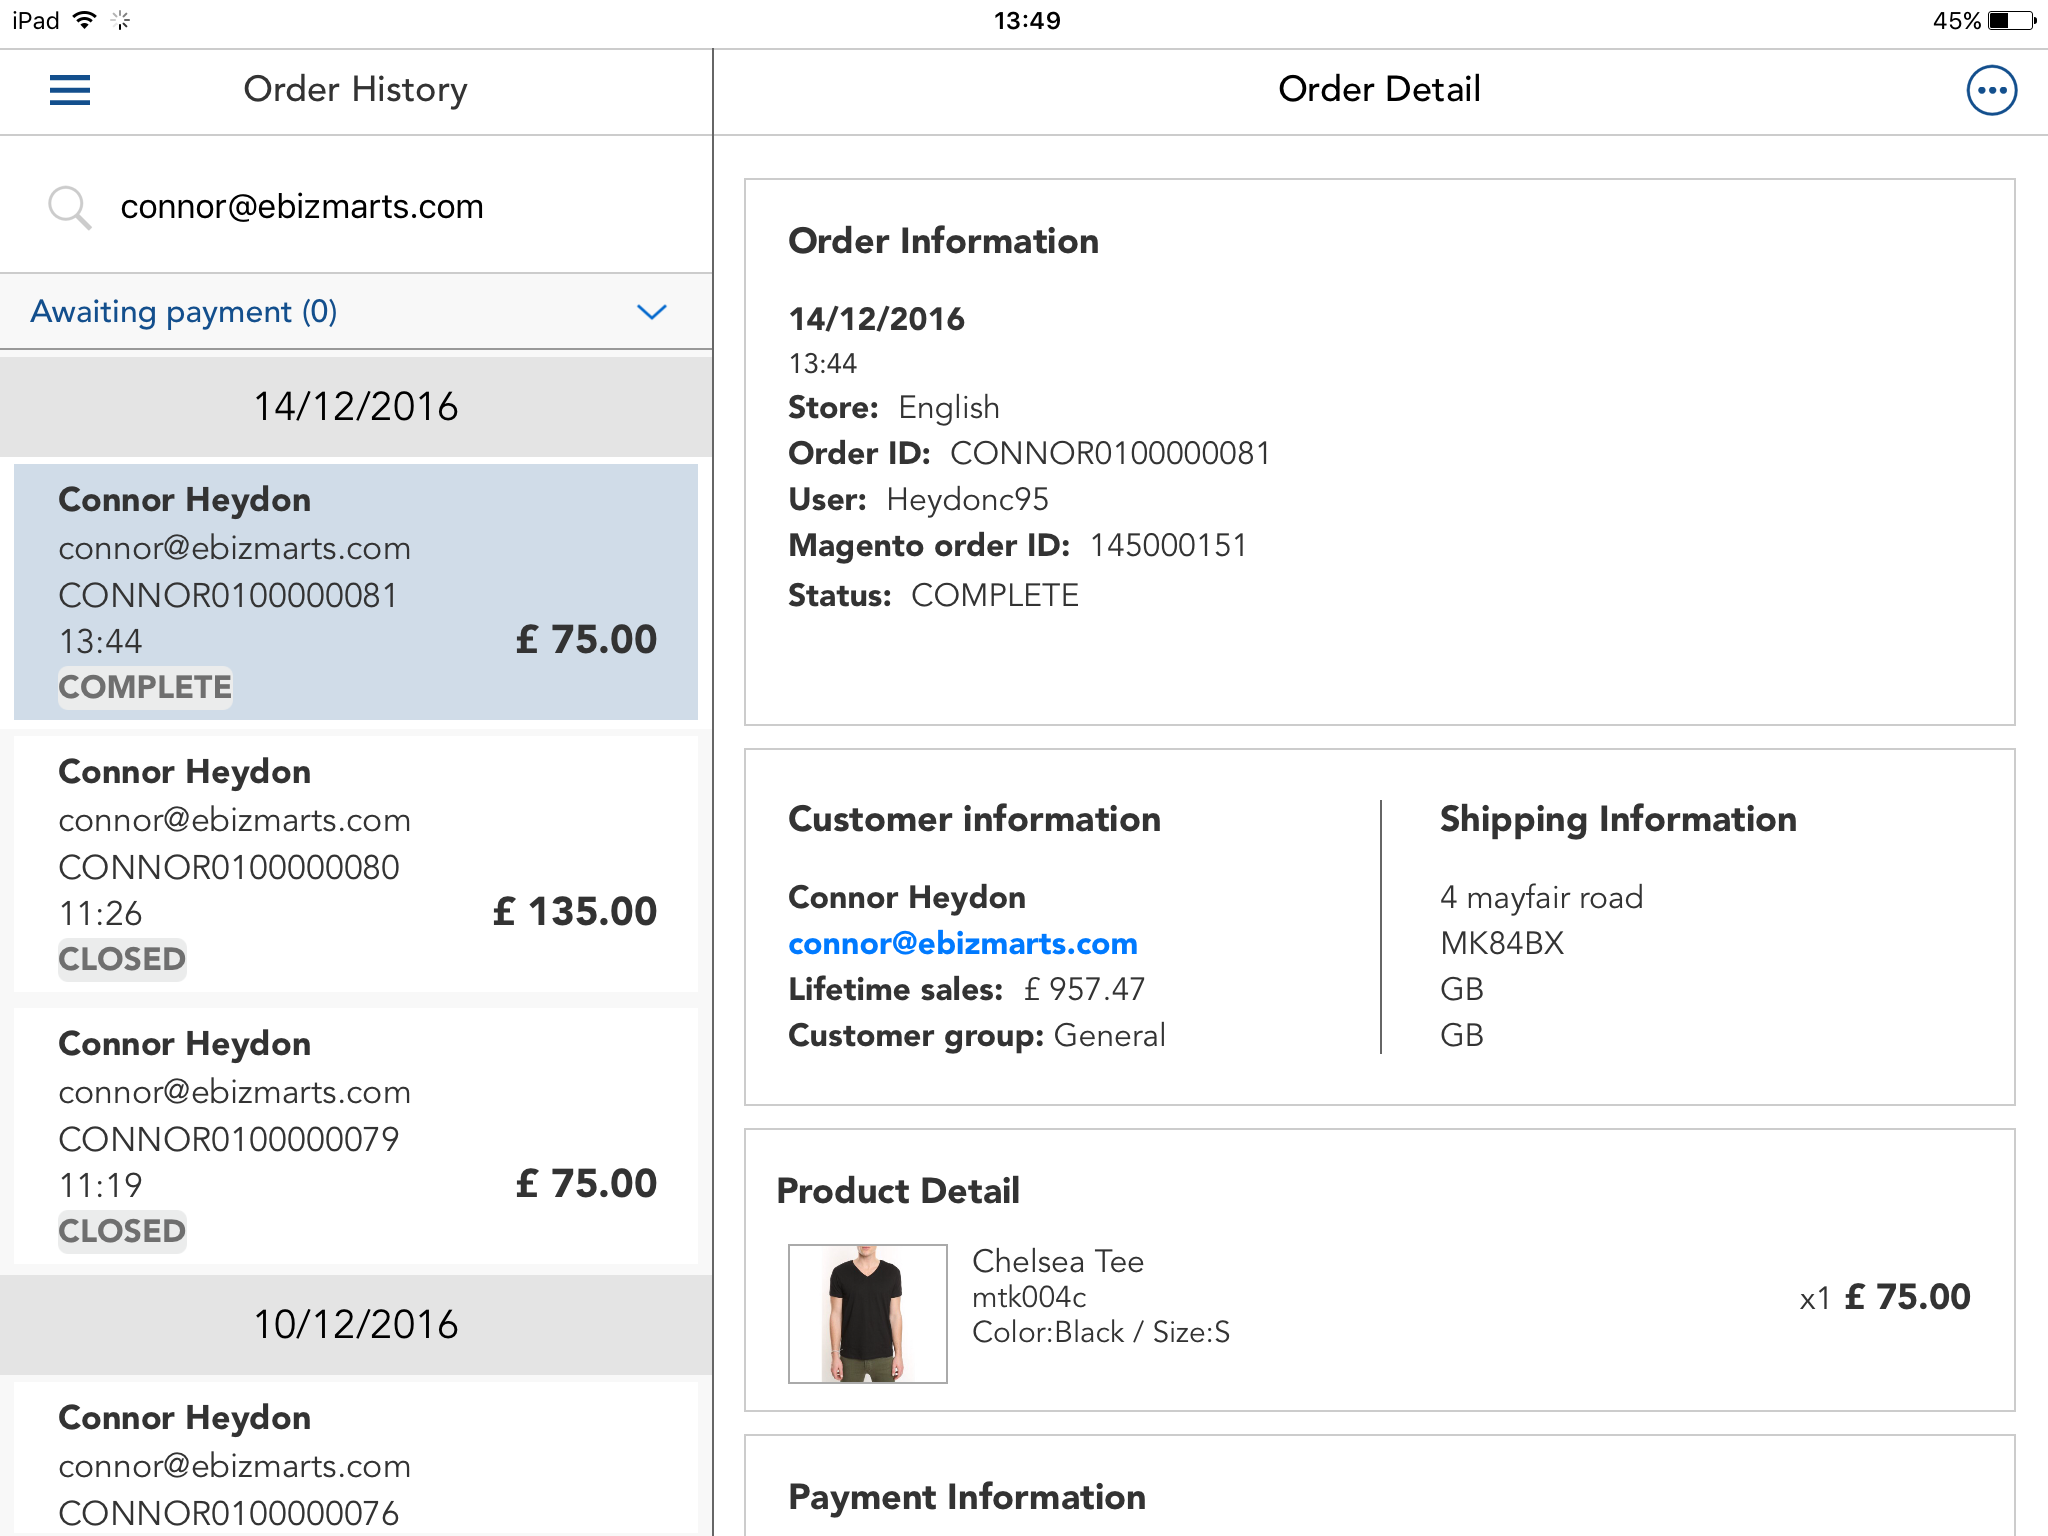 Creating Giftcards in POS App